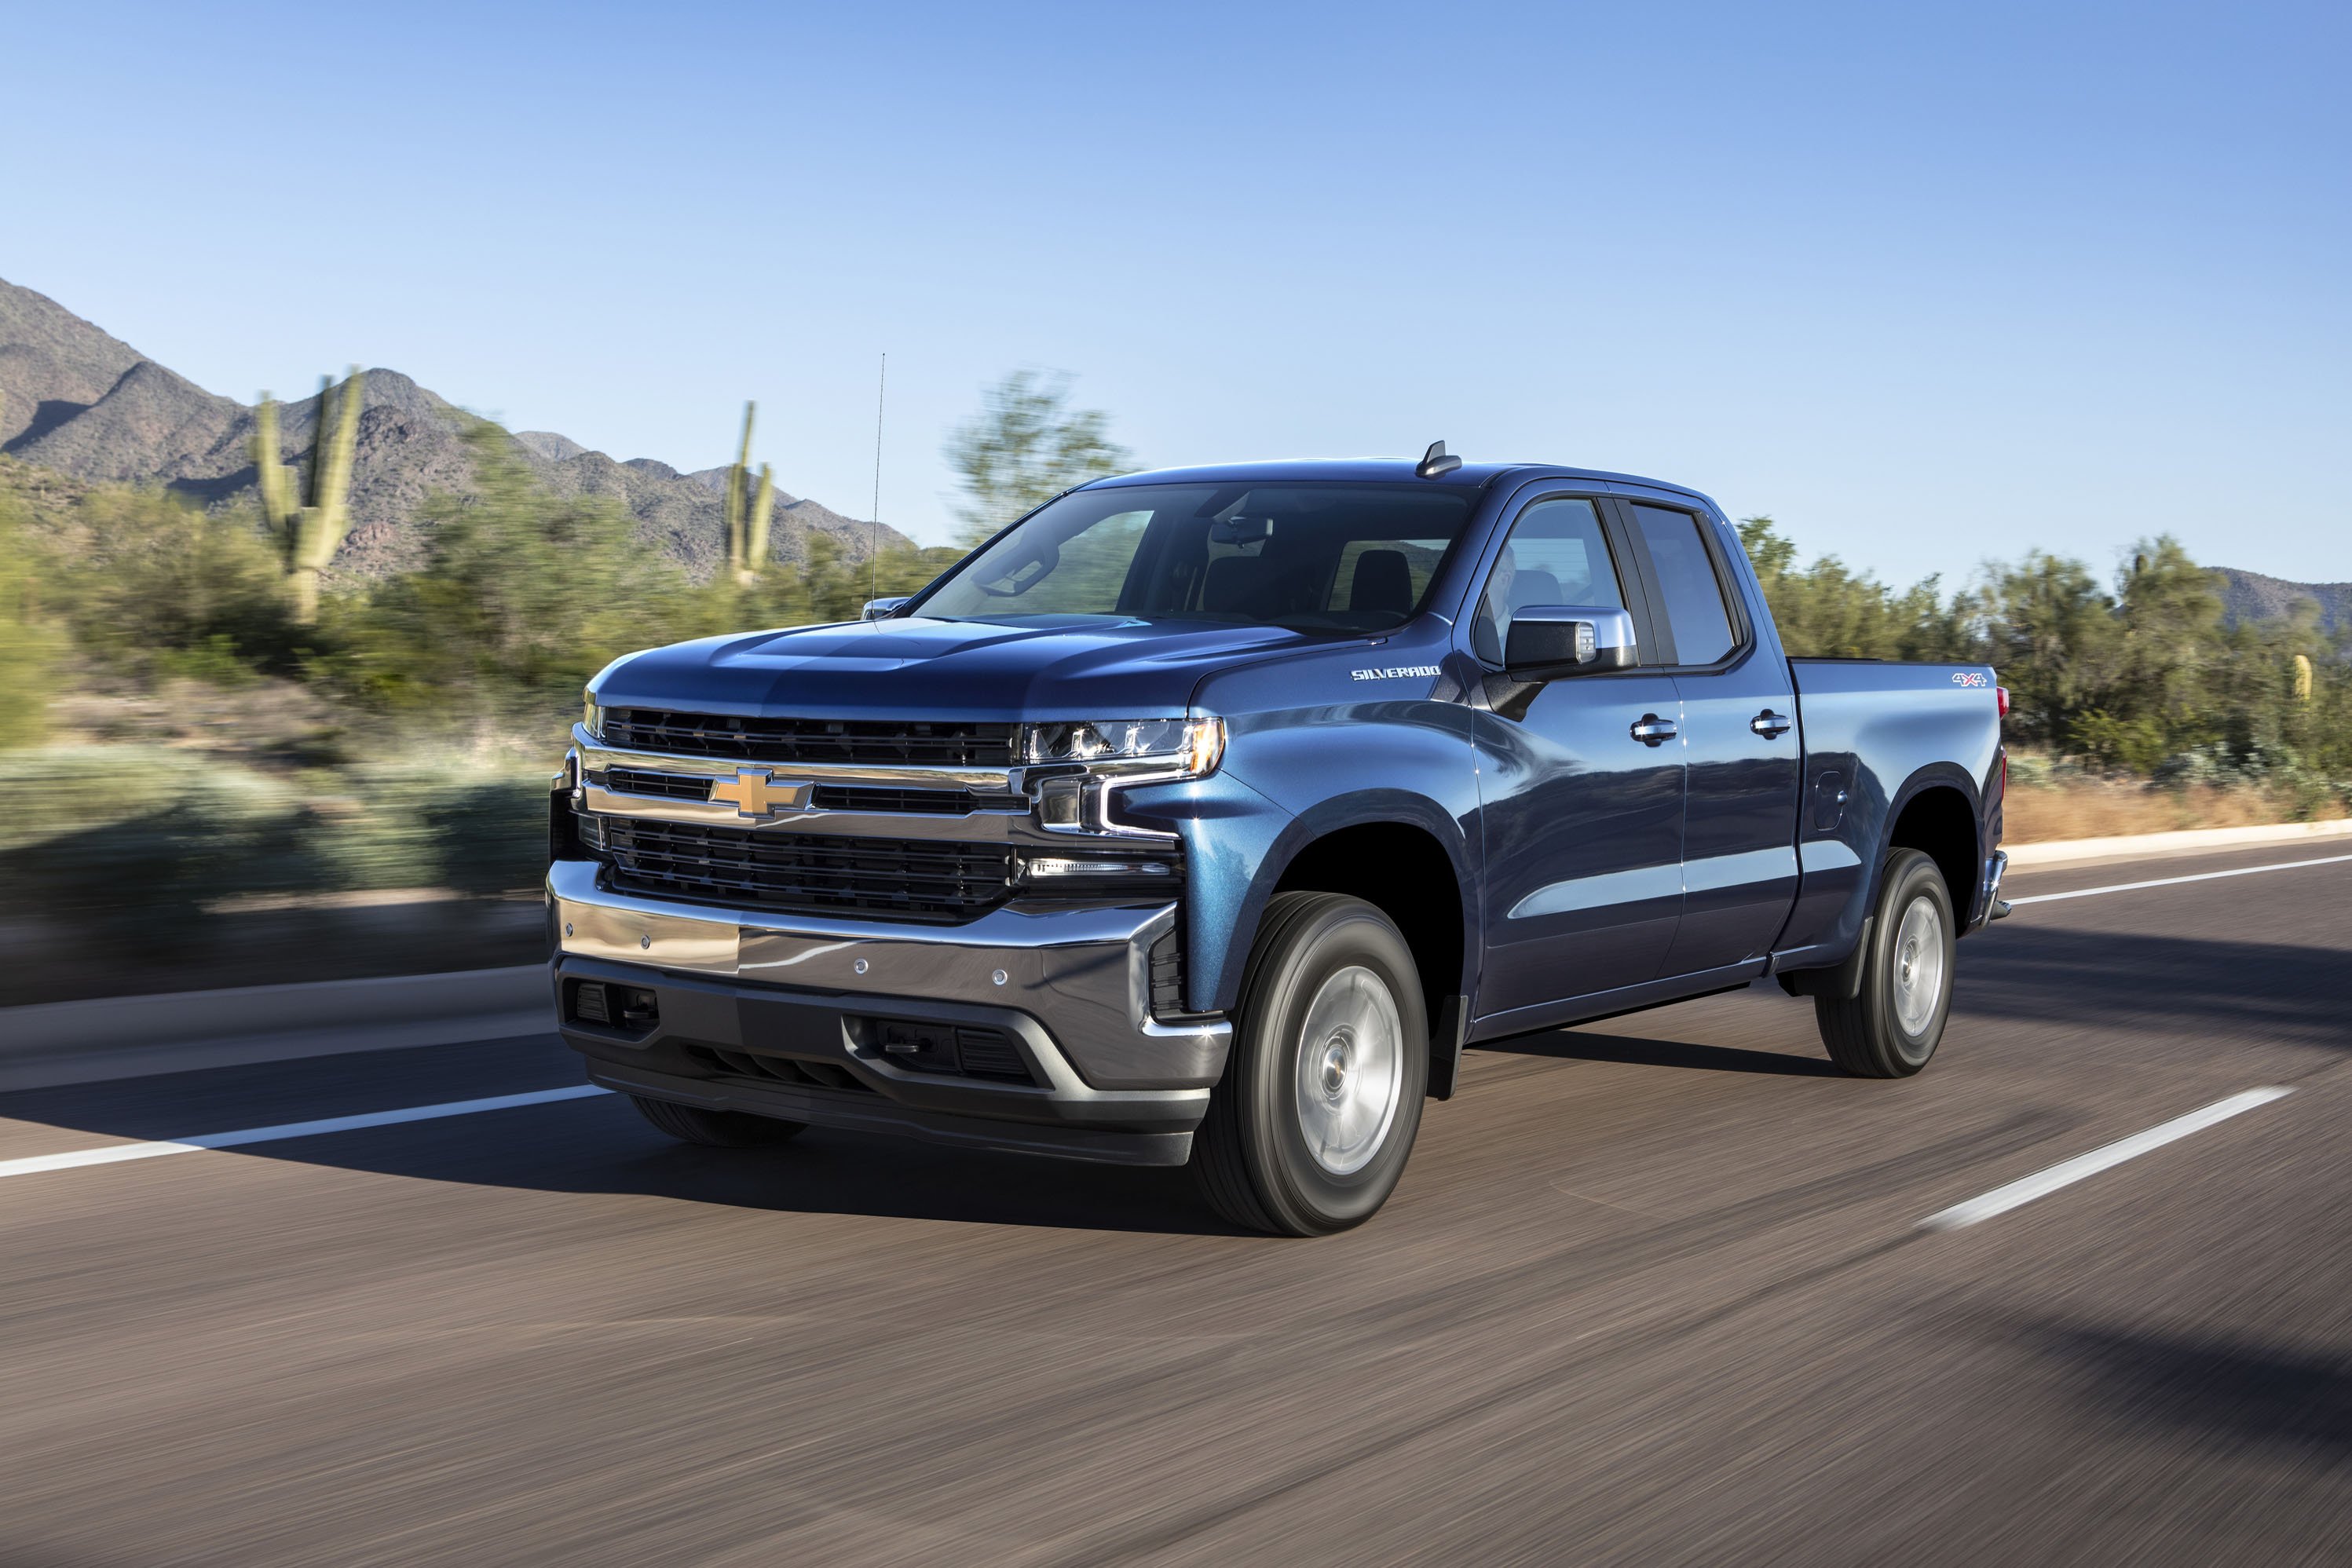 2019 Chevrolet Silverado 1500 Vs 2019 Gmc Sierra 1500 Compare Cars